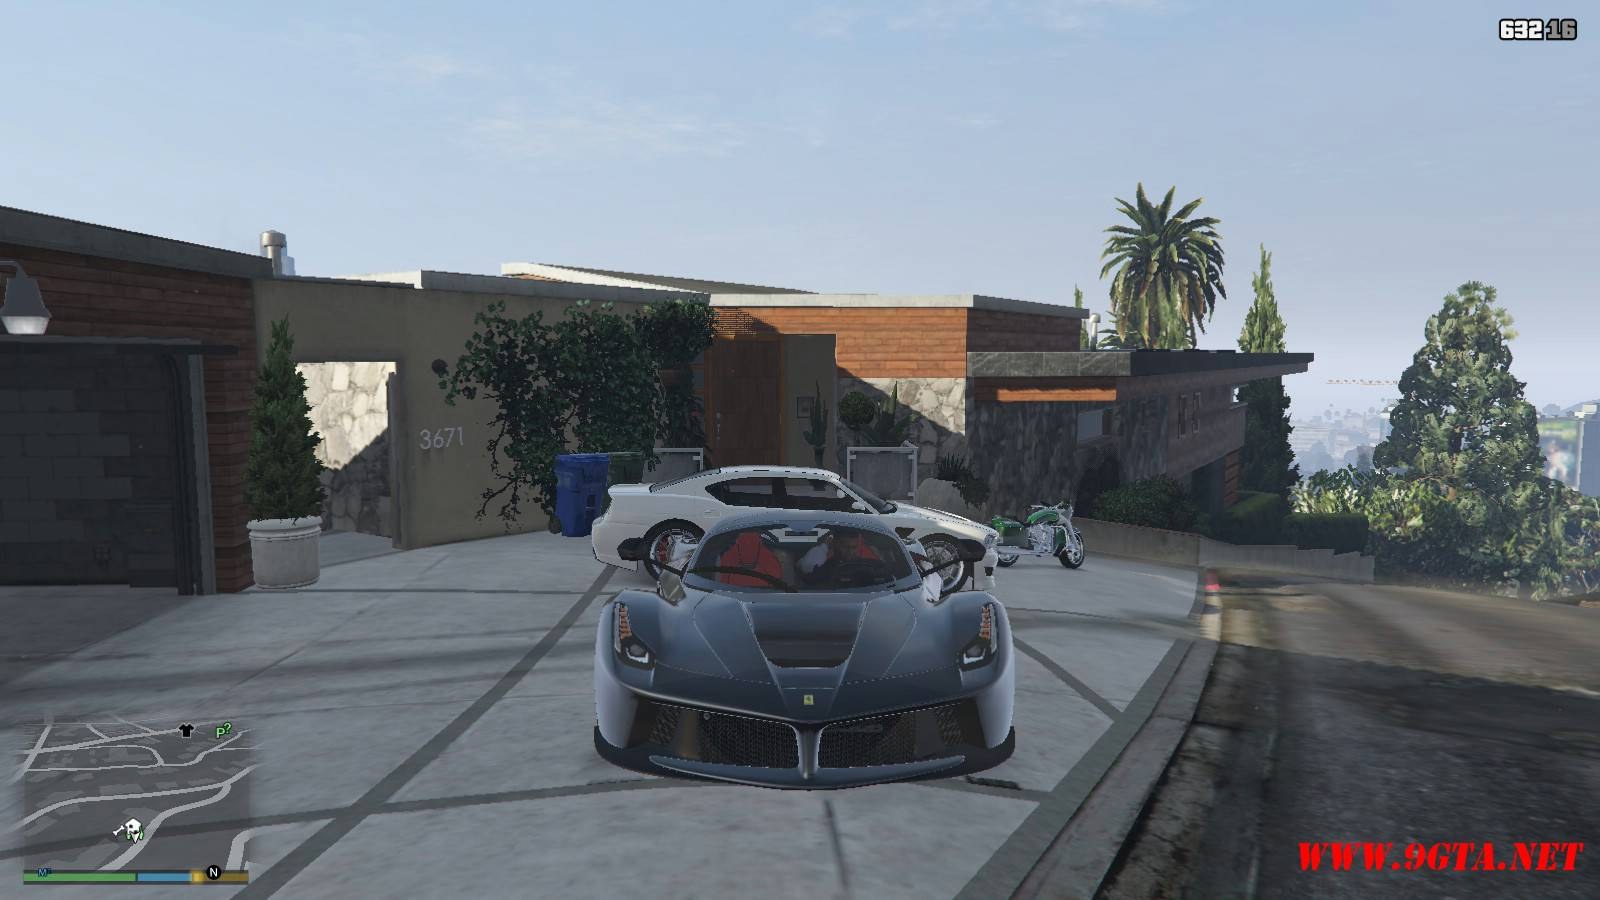 2015 Ferrari LeFerrari Mod For GTA5 (10)